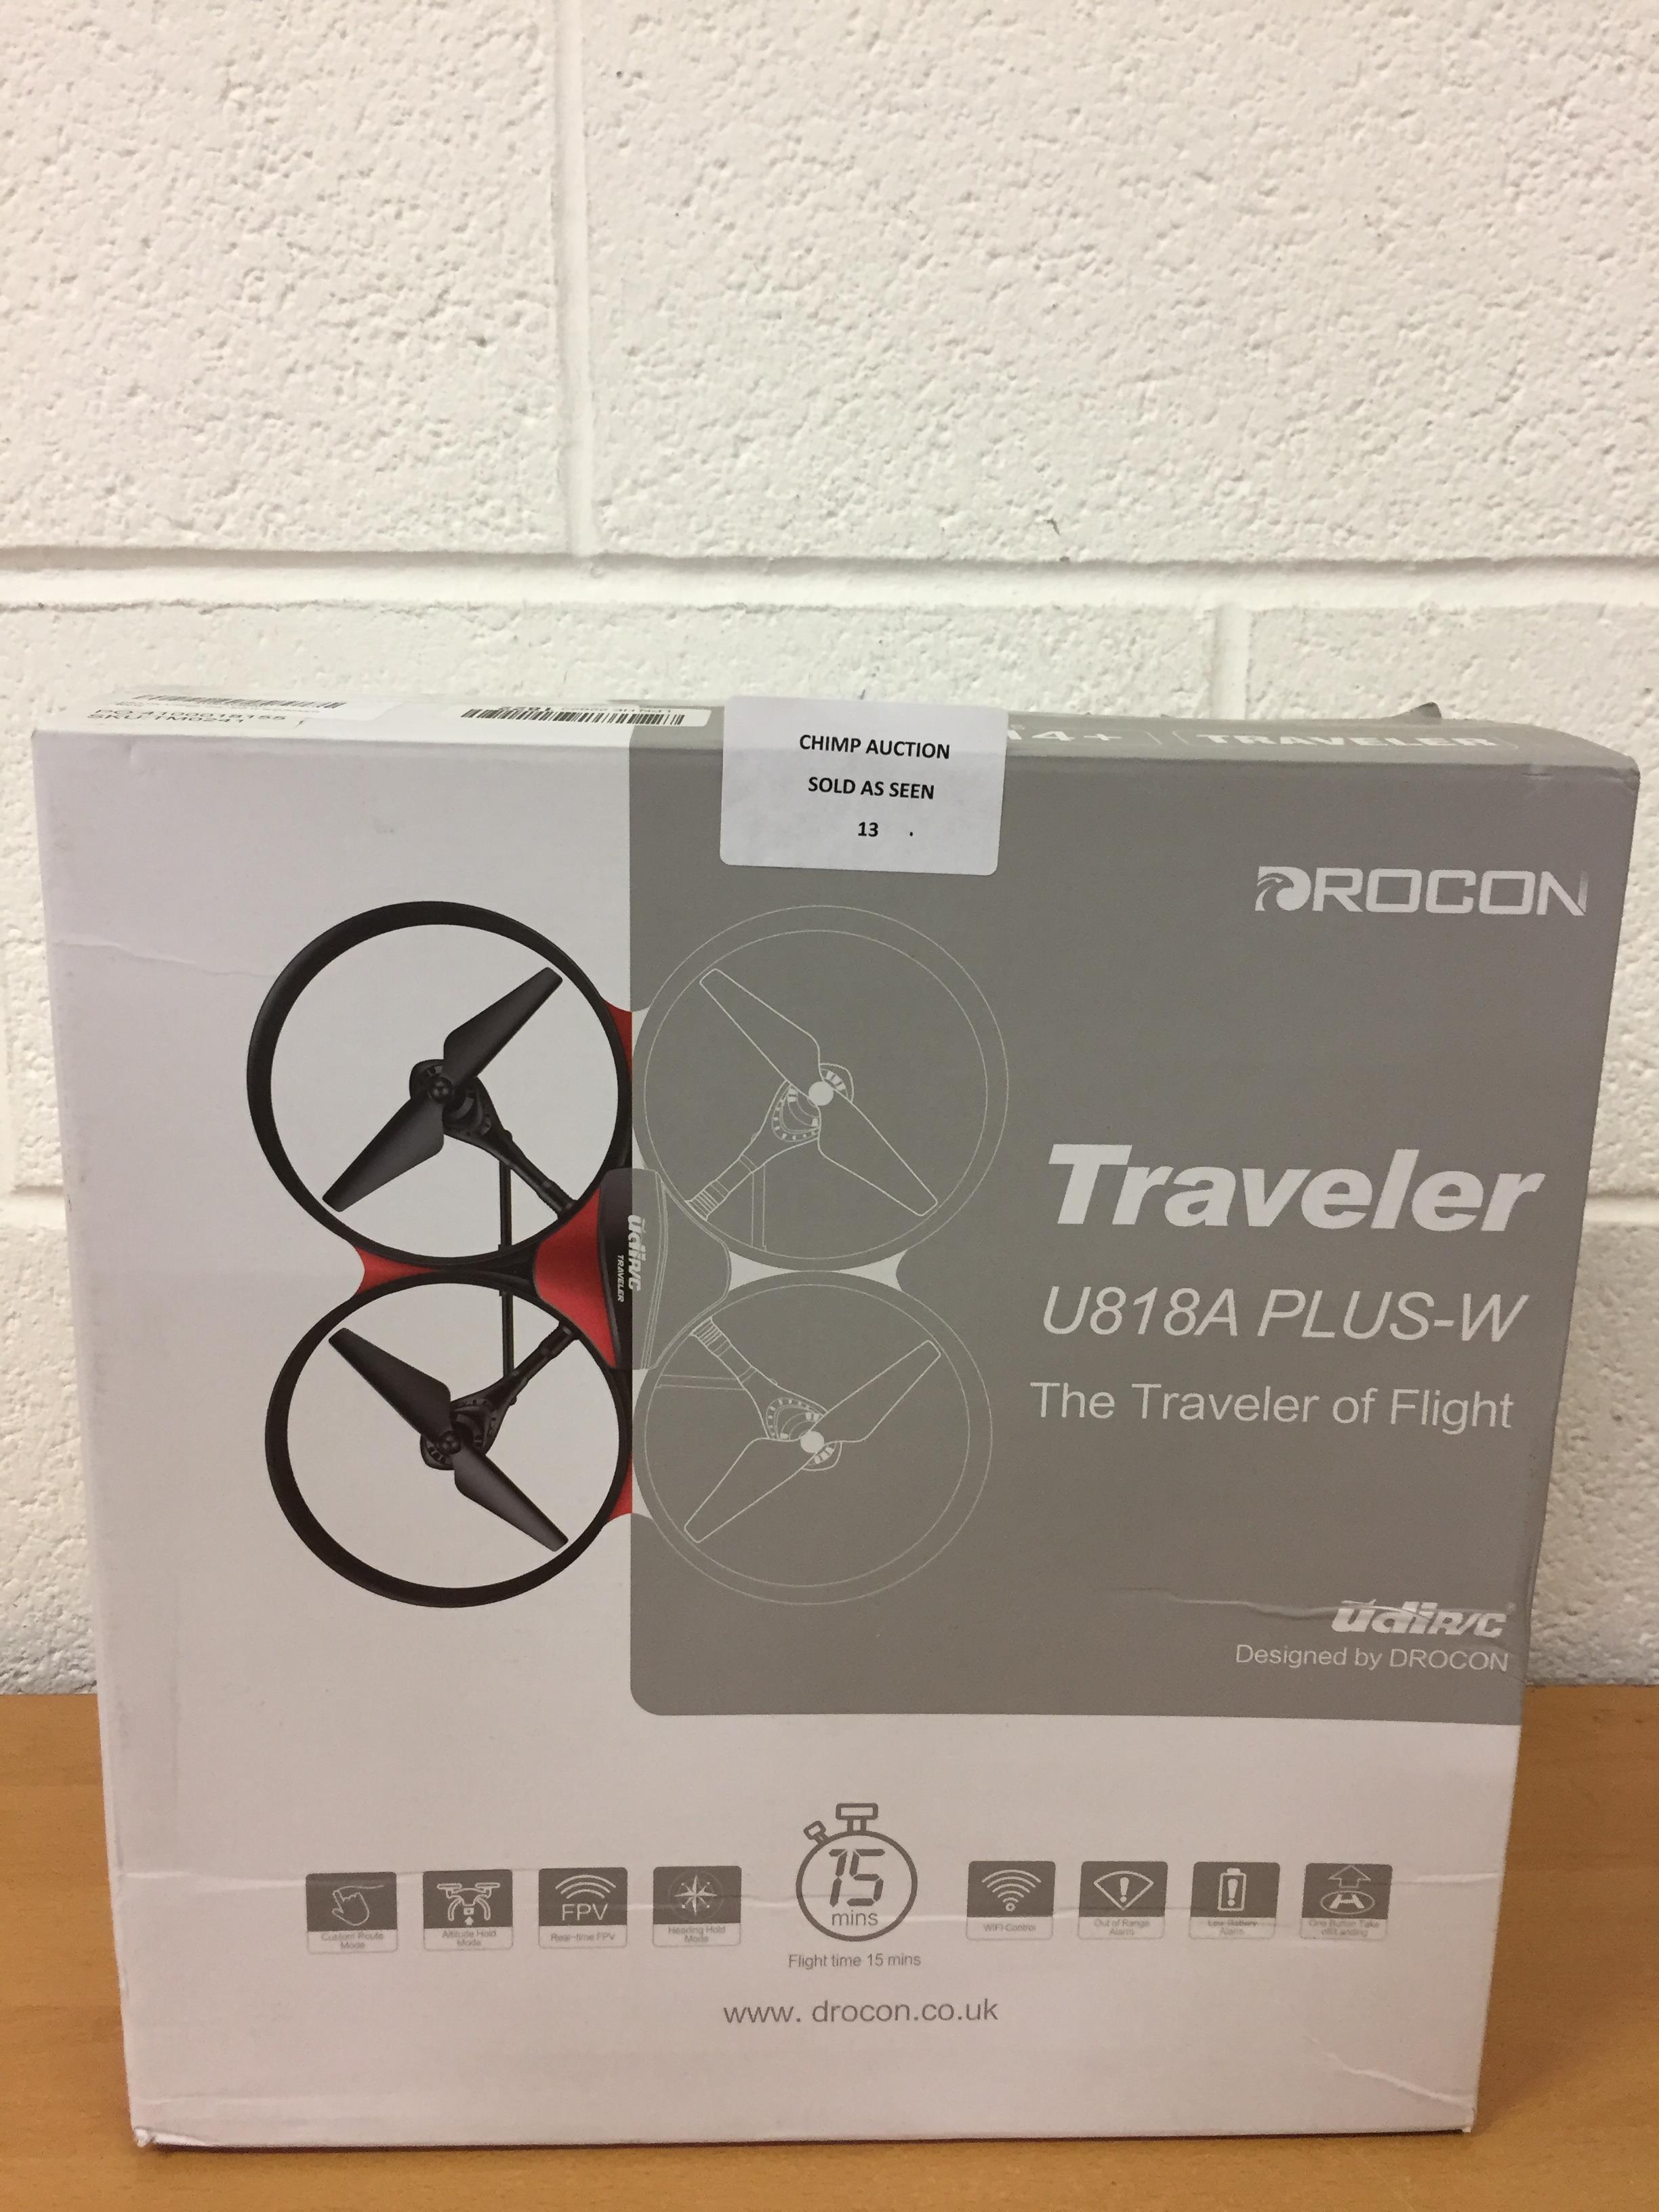 Lot 13 - Drocon Traveler U818A Plus Wifi remote controlled Drone